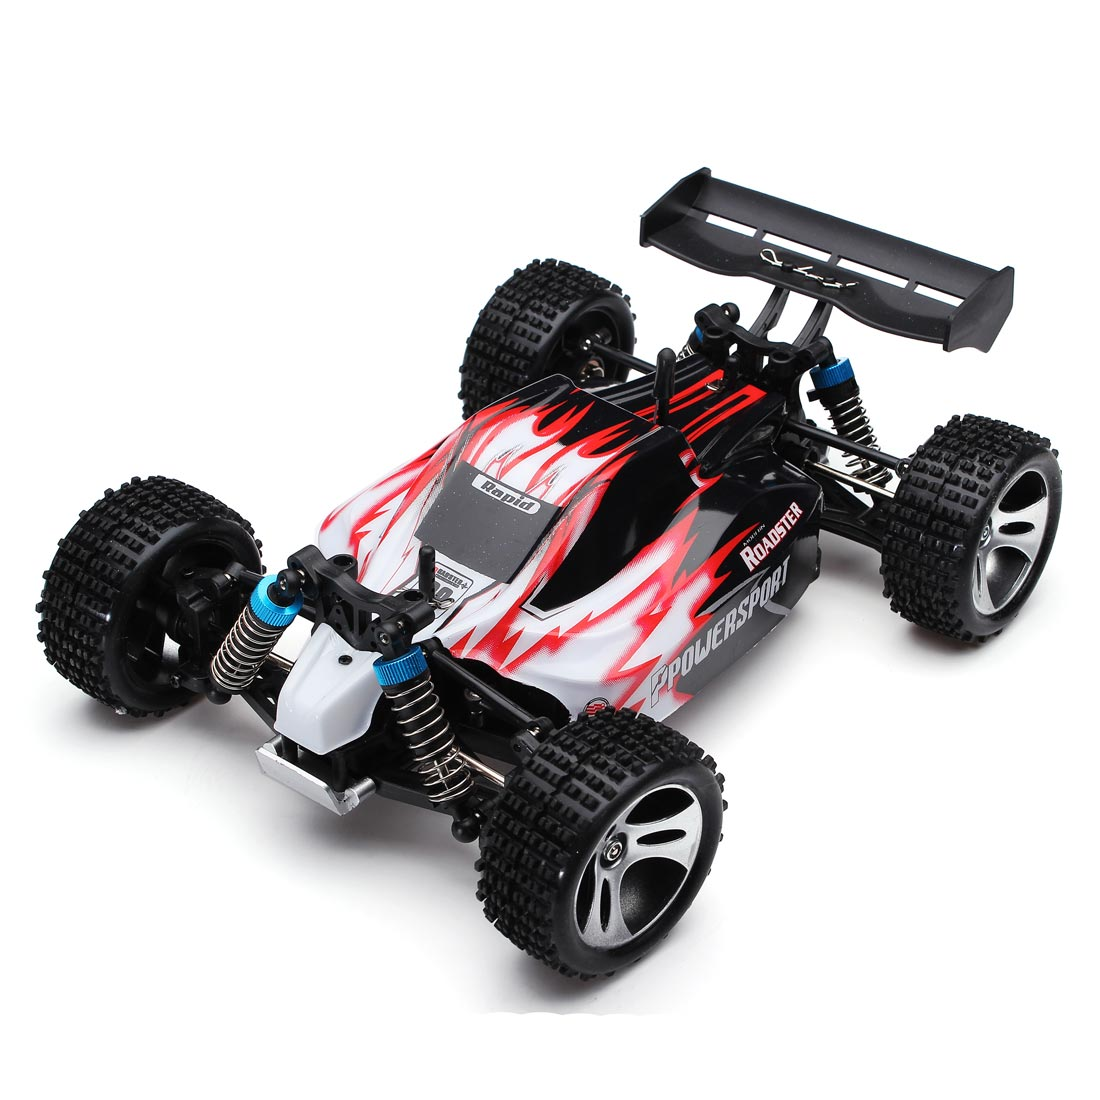 RC Car WLtoys A959 2.4G 1/18 Scale Remote Control Off-road Racing Car High Speed Stunt SUV Toy Gift For Boy RC Mini Car RTR mini rc car 1 28 2 4g off road remote control frequencies toy for wltoys k989 racing cars kid children gifts fj88